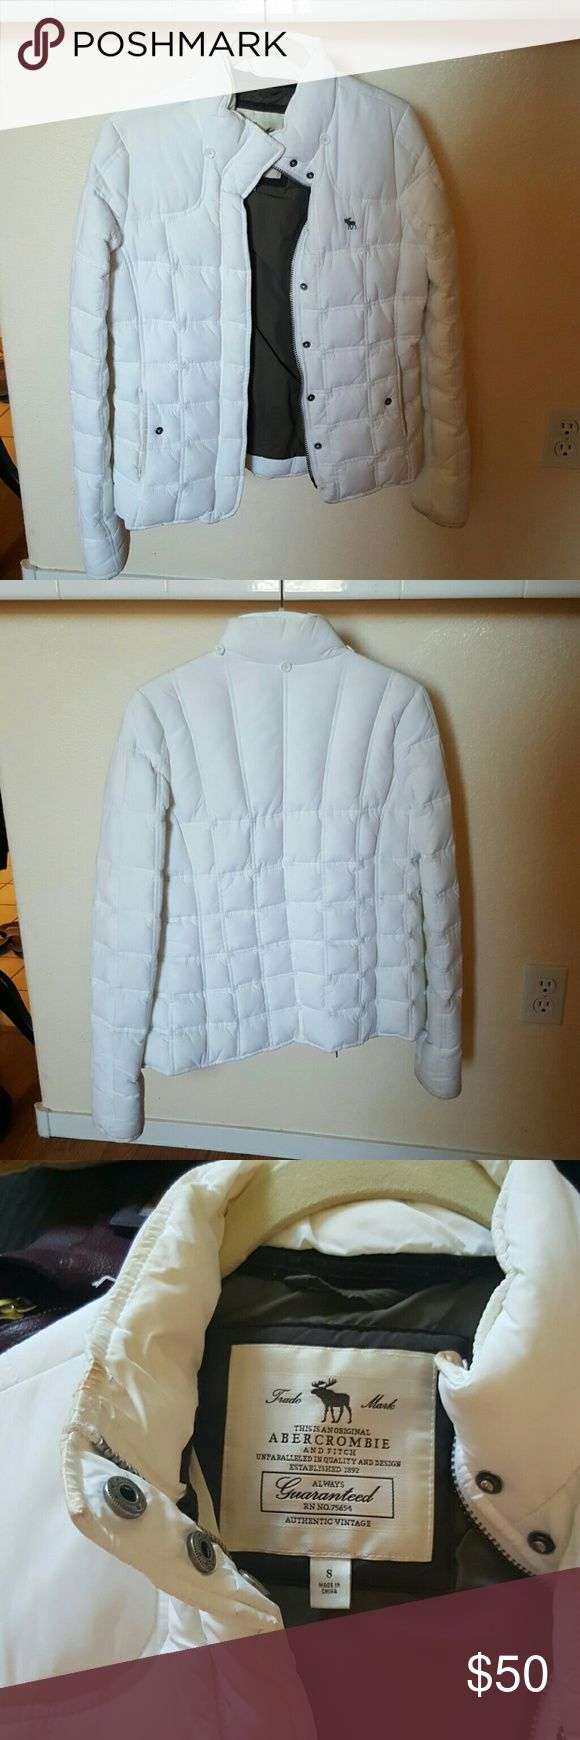 Jacket Abercrombie and Fitch White puffy Jacket, worn a few times, light debris on the pockets Abercrombie & Fitch Jackets & Coats Puffers